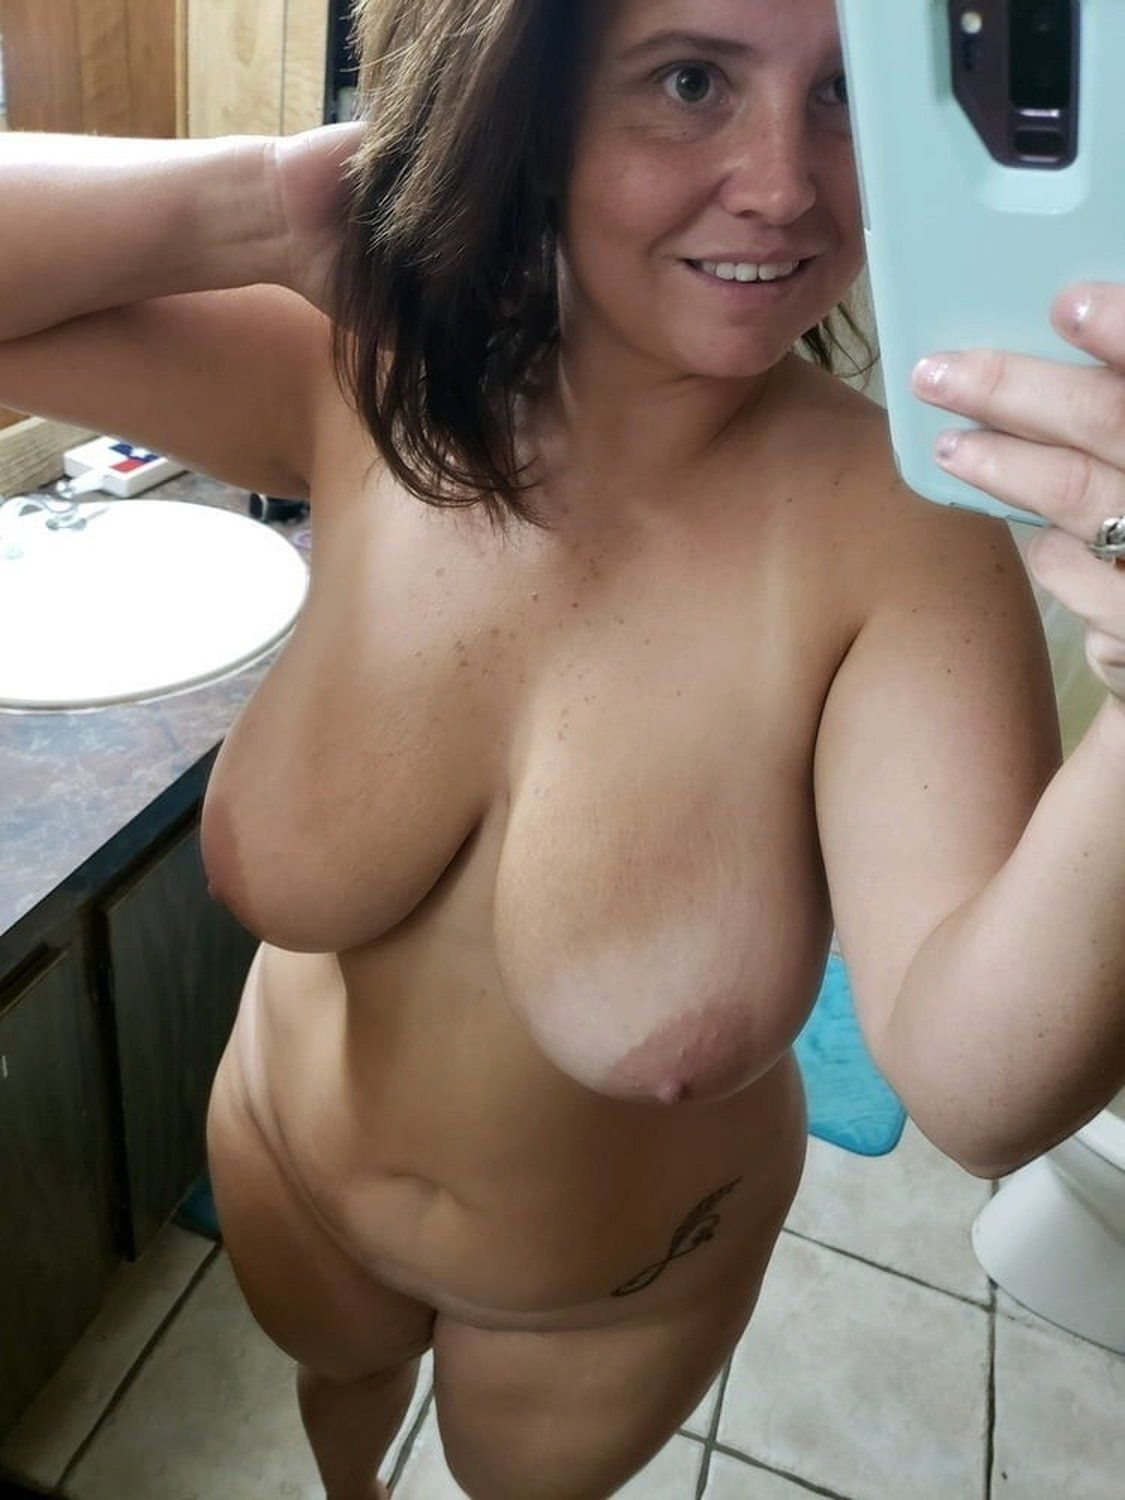 Attractive mature takes selfie while showing nice tits and sexy body. Brunette amateur wife uncovering her huge boobs for nude selfshot